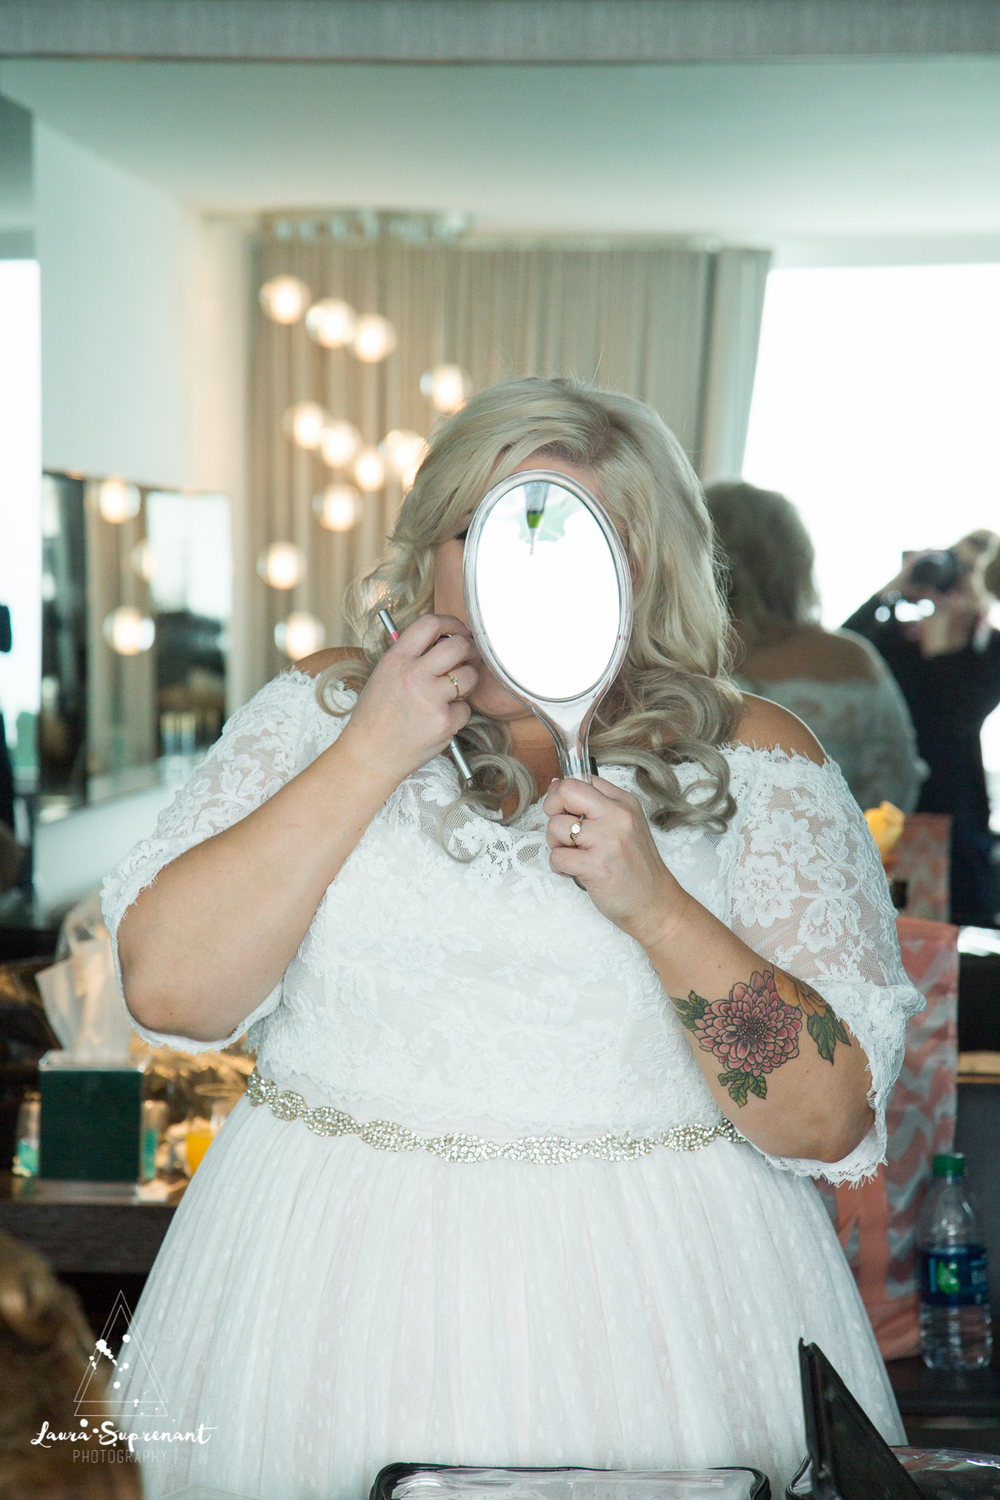 wedding_photography_chicago_wrigley_field_ravenswood_event_center_laura_suprenant (6 of 82).jpg